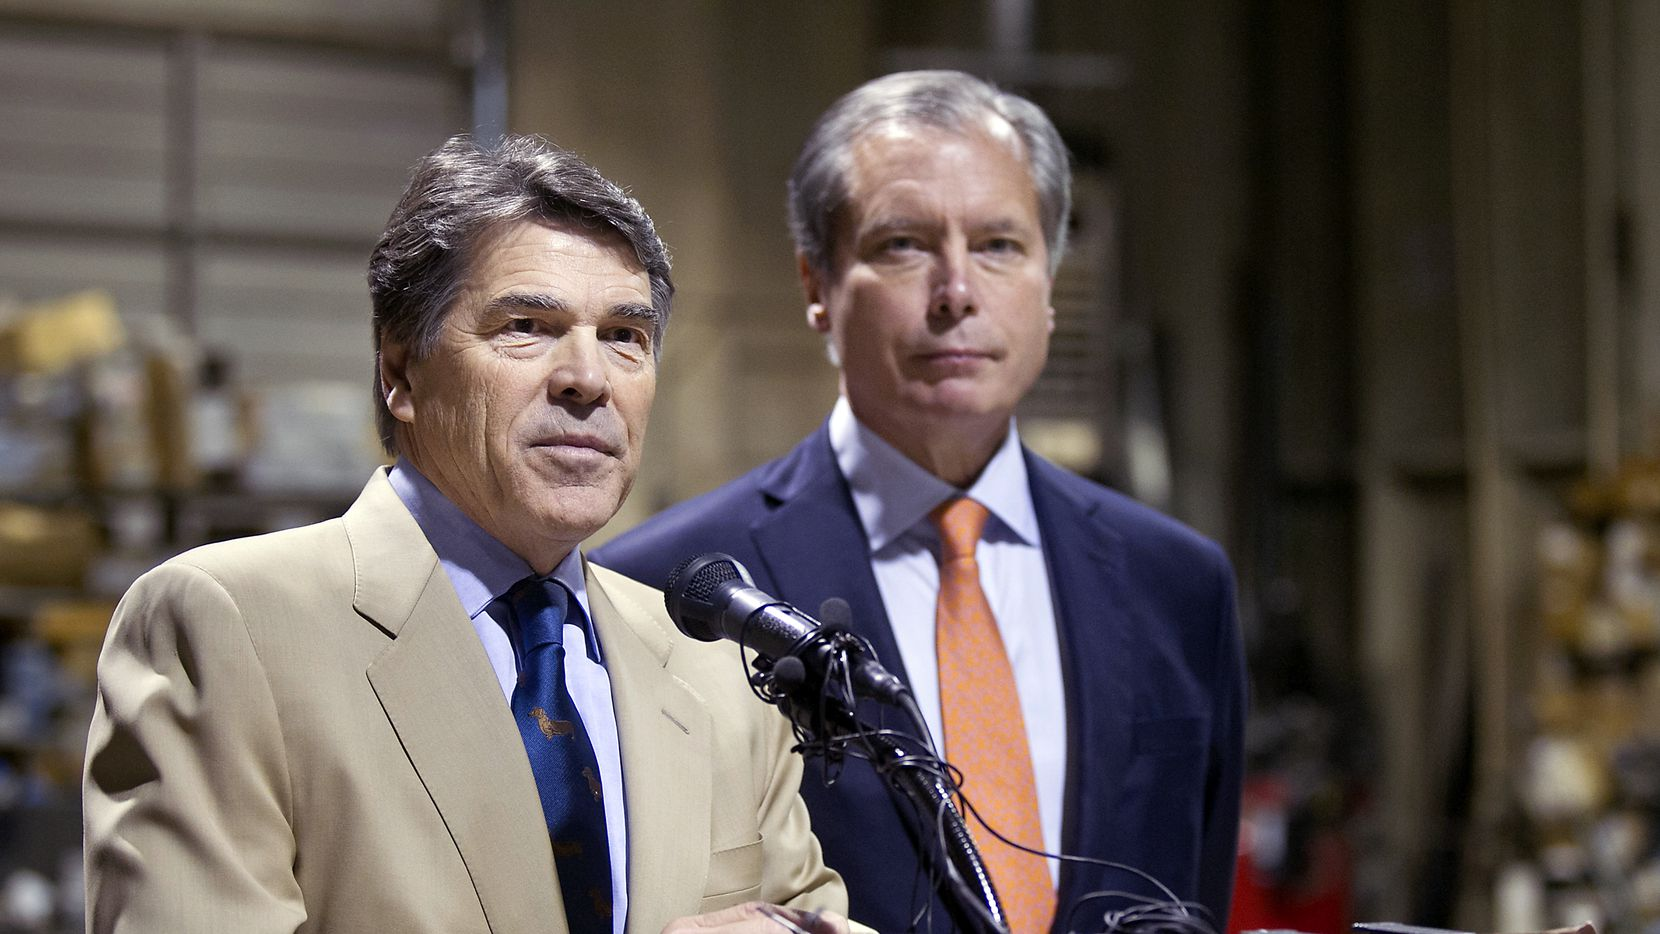 Lt. Gov. David Dewhurst joined Gov. Rick Perry for a November event at an East Austin glass company.